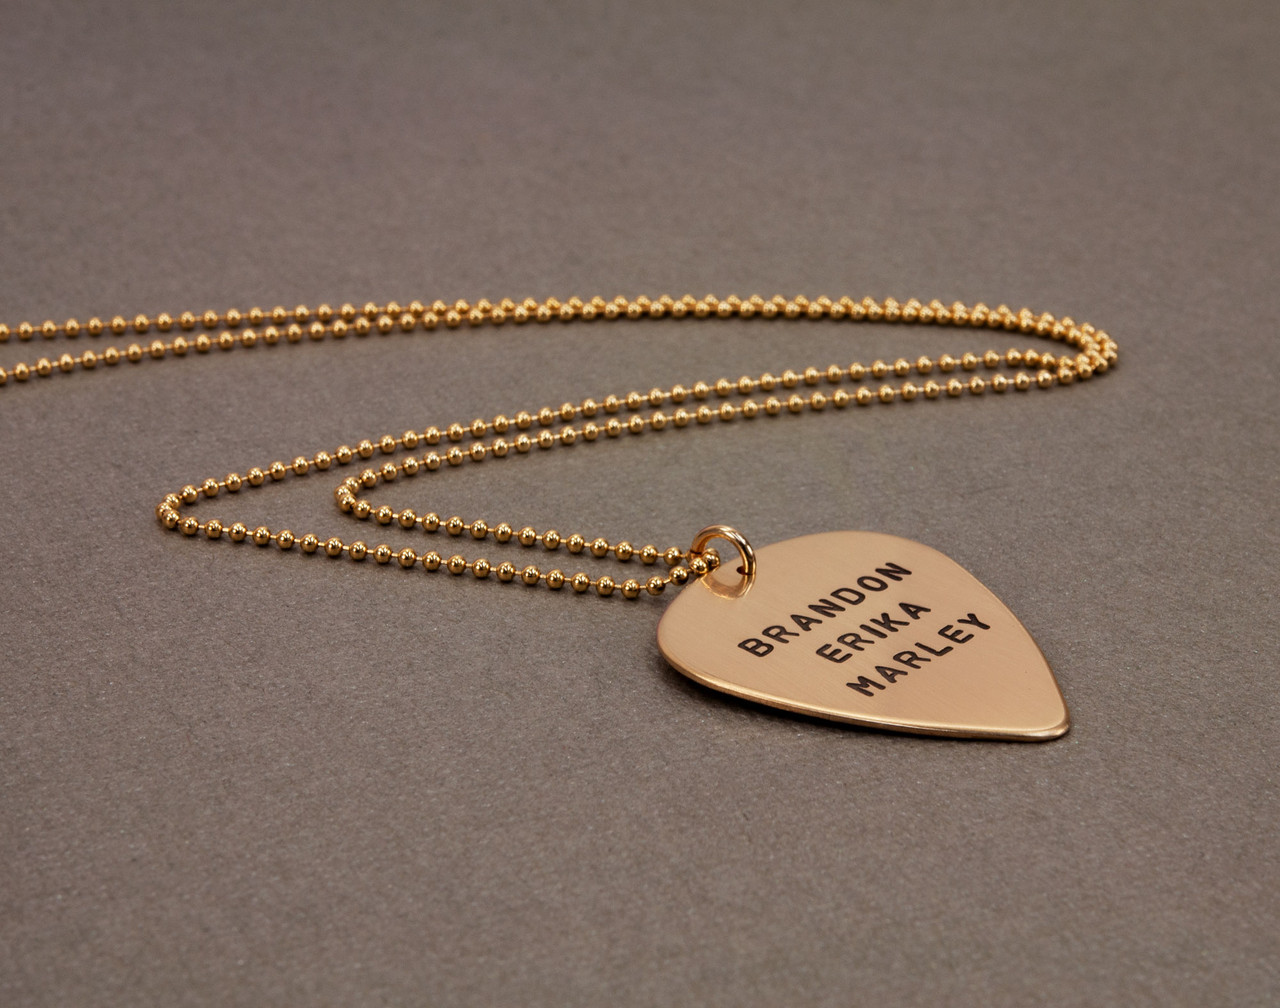 hand stamped personalized guitar pick necklace in gold, shown from the side